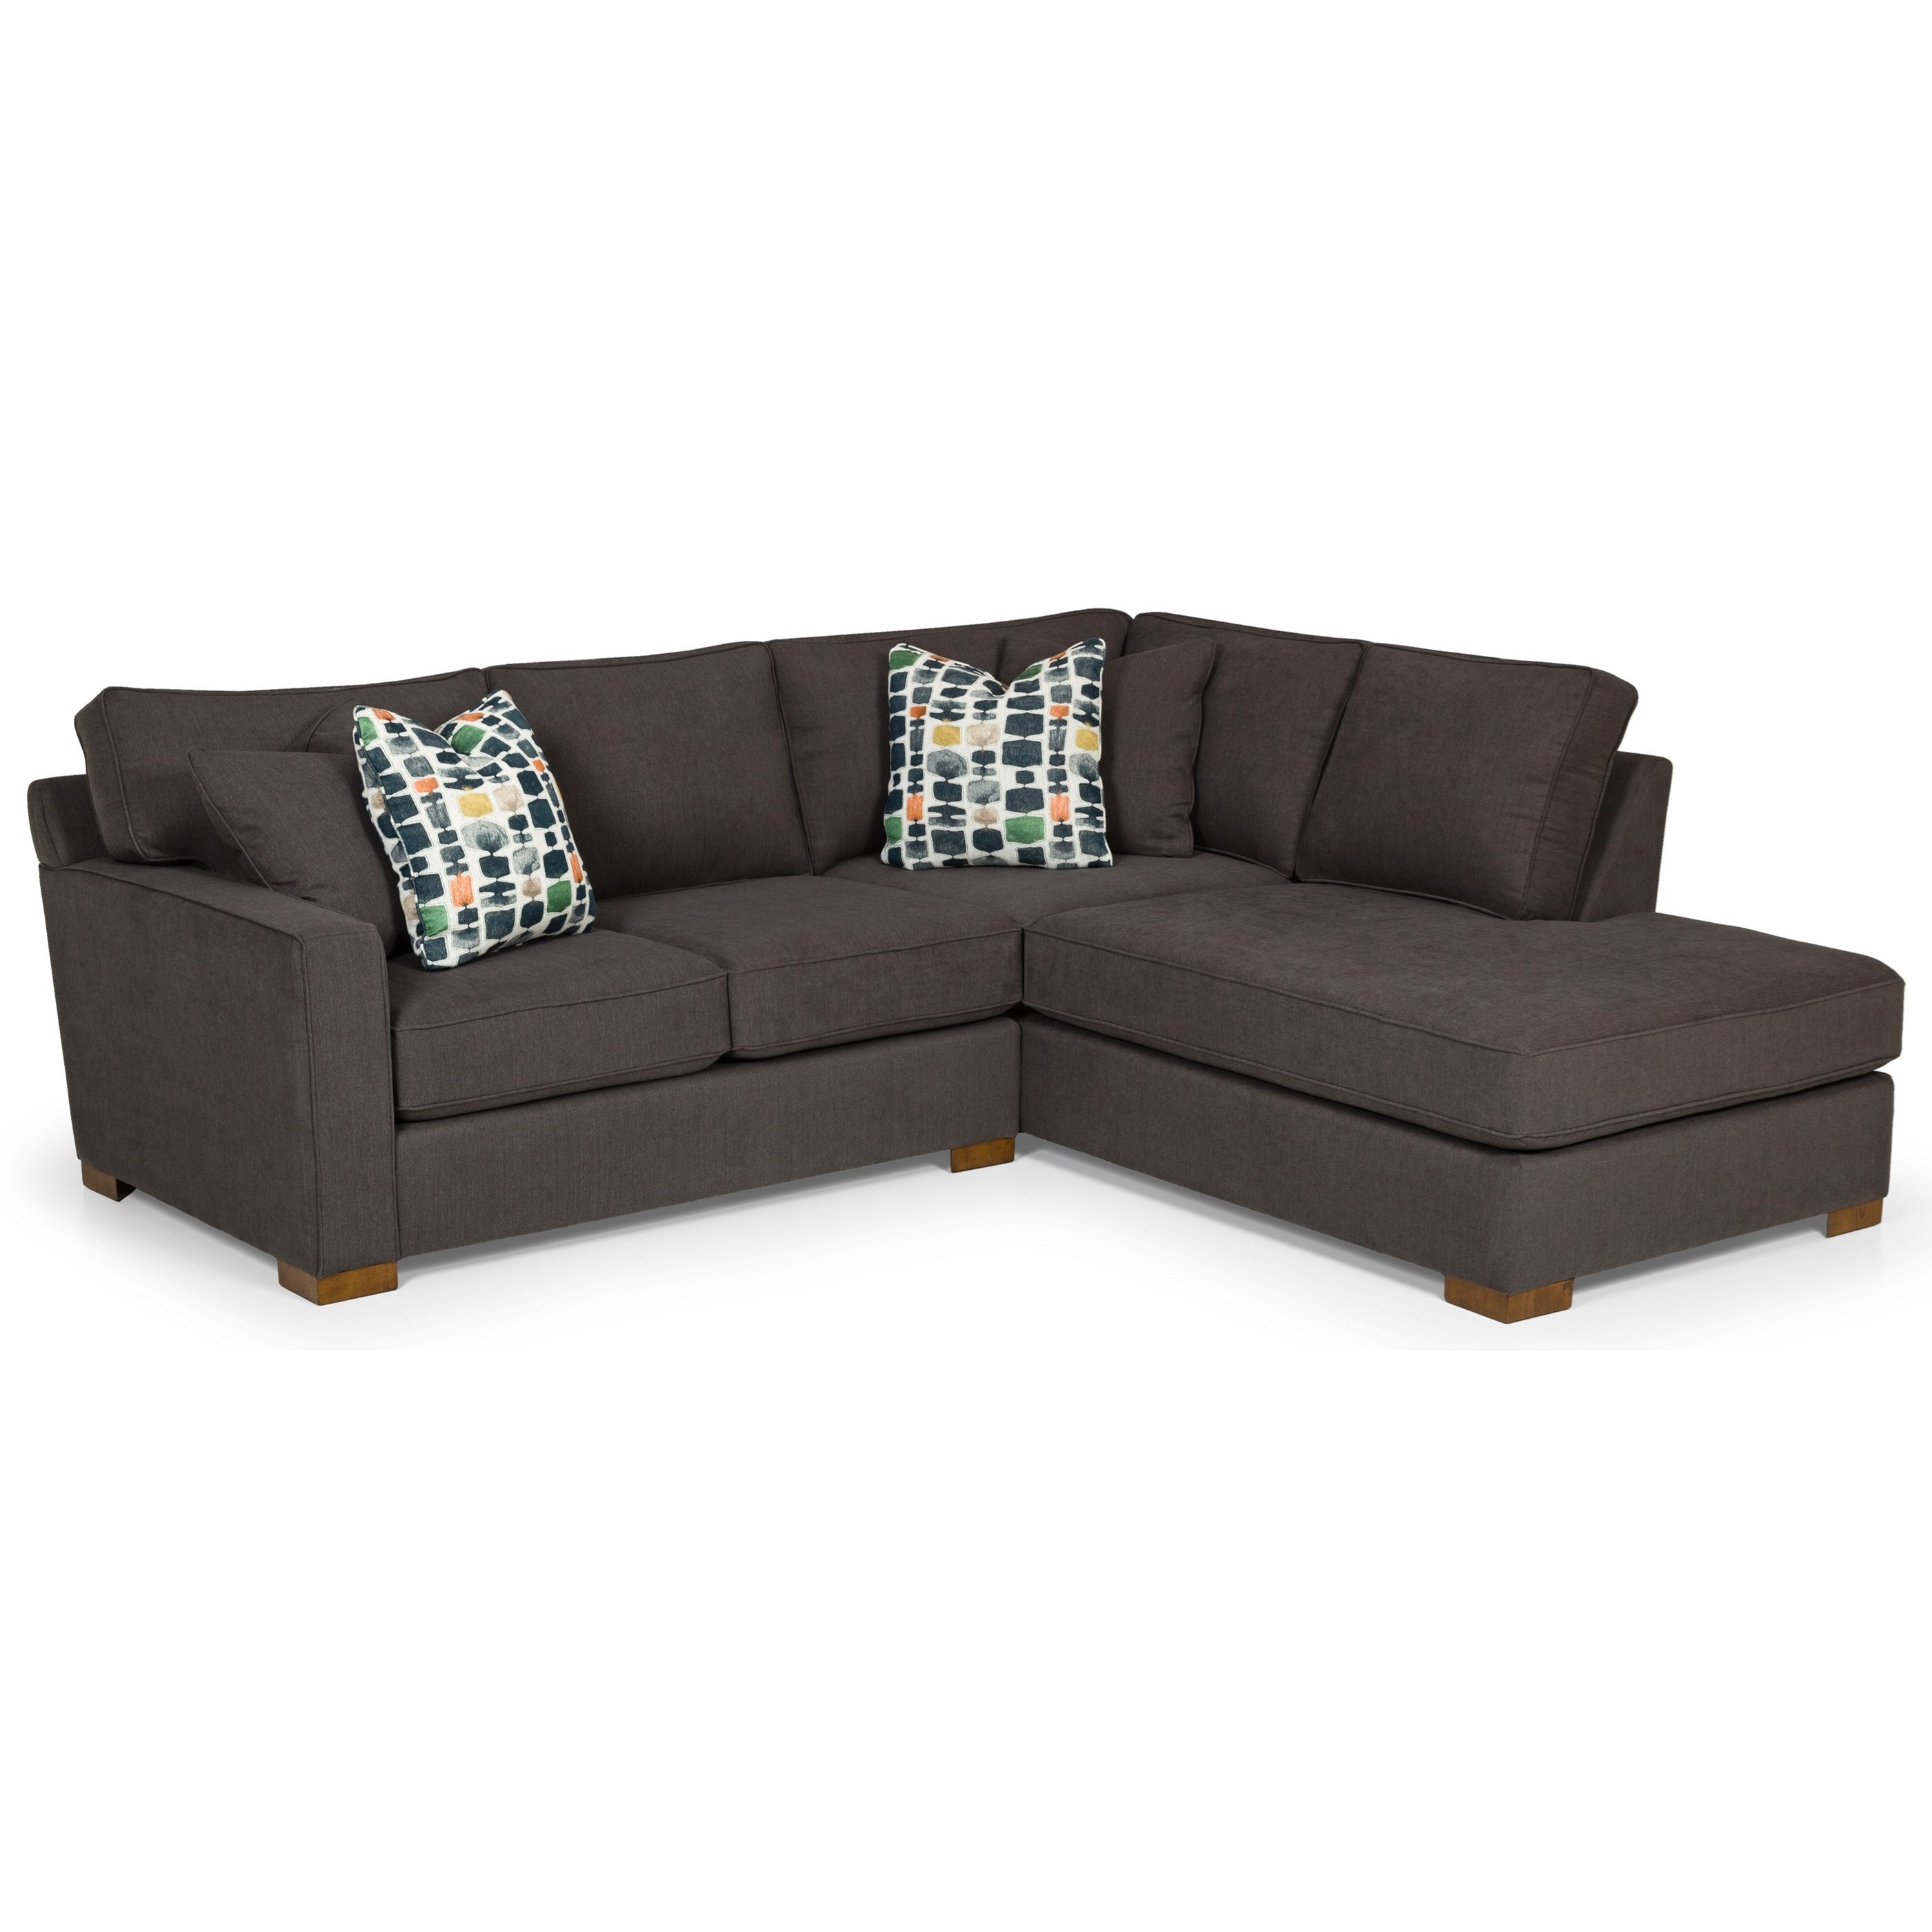 3-Seat Sectional Sofa w/ RAF Chaise